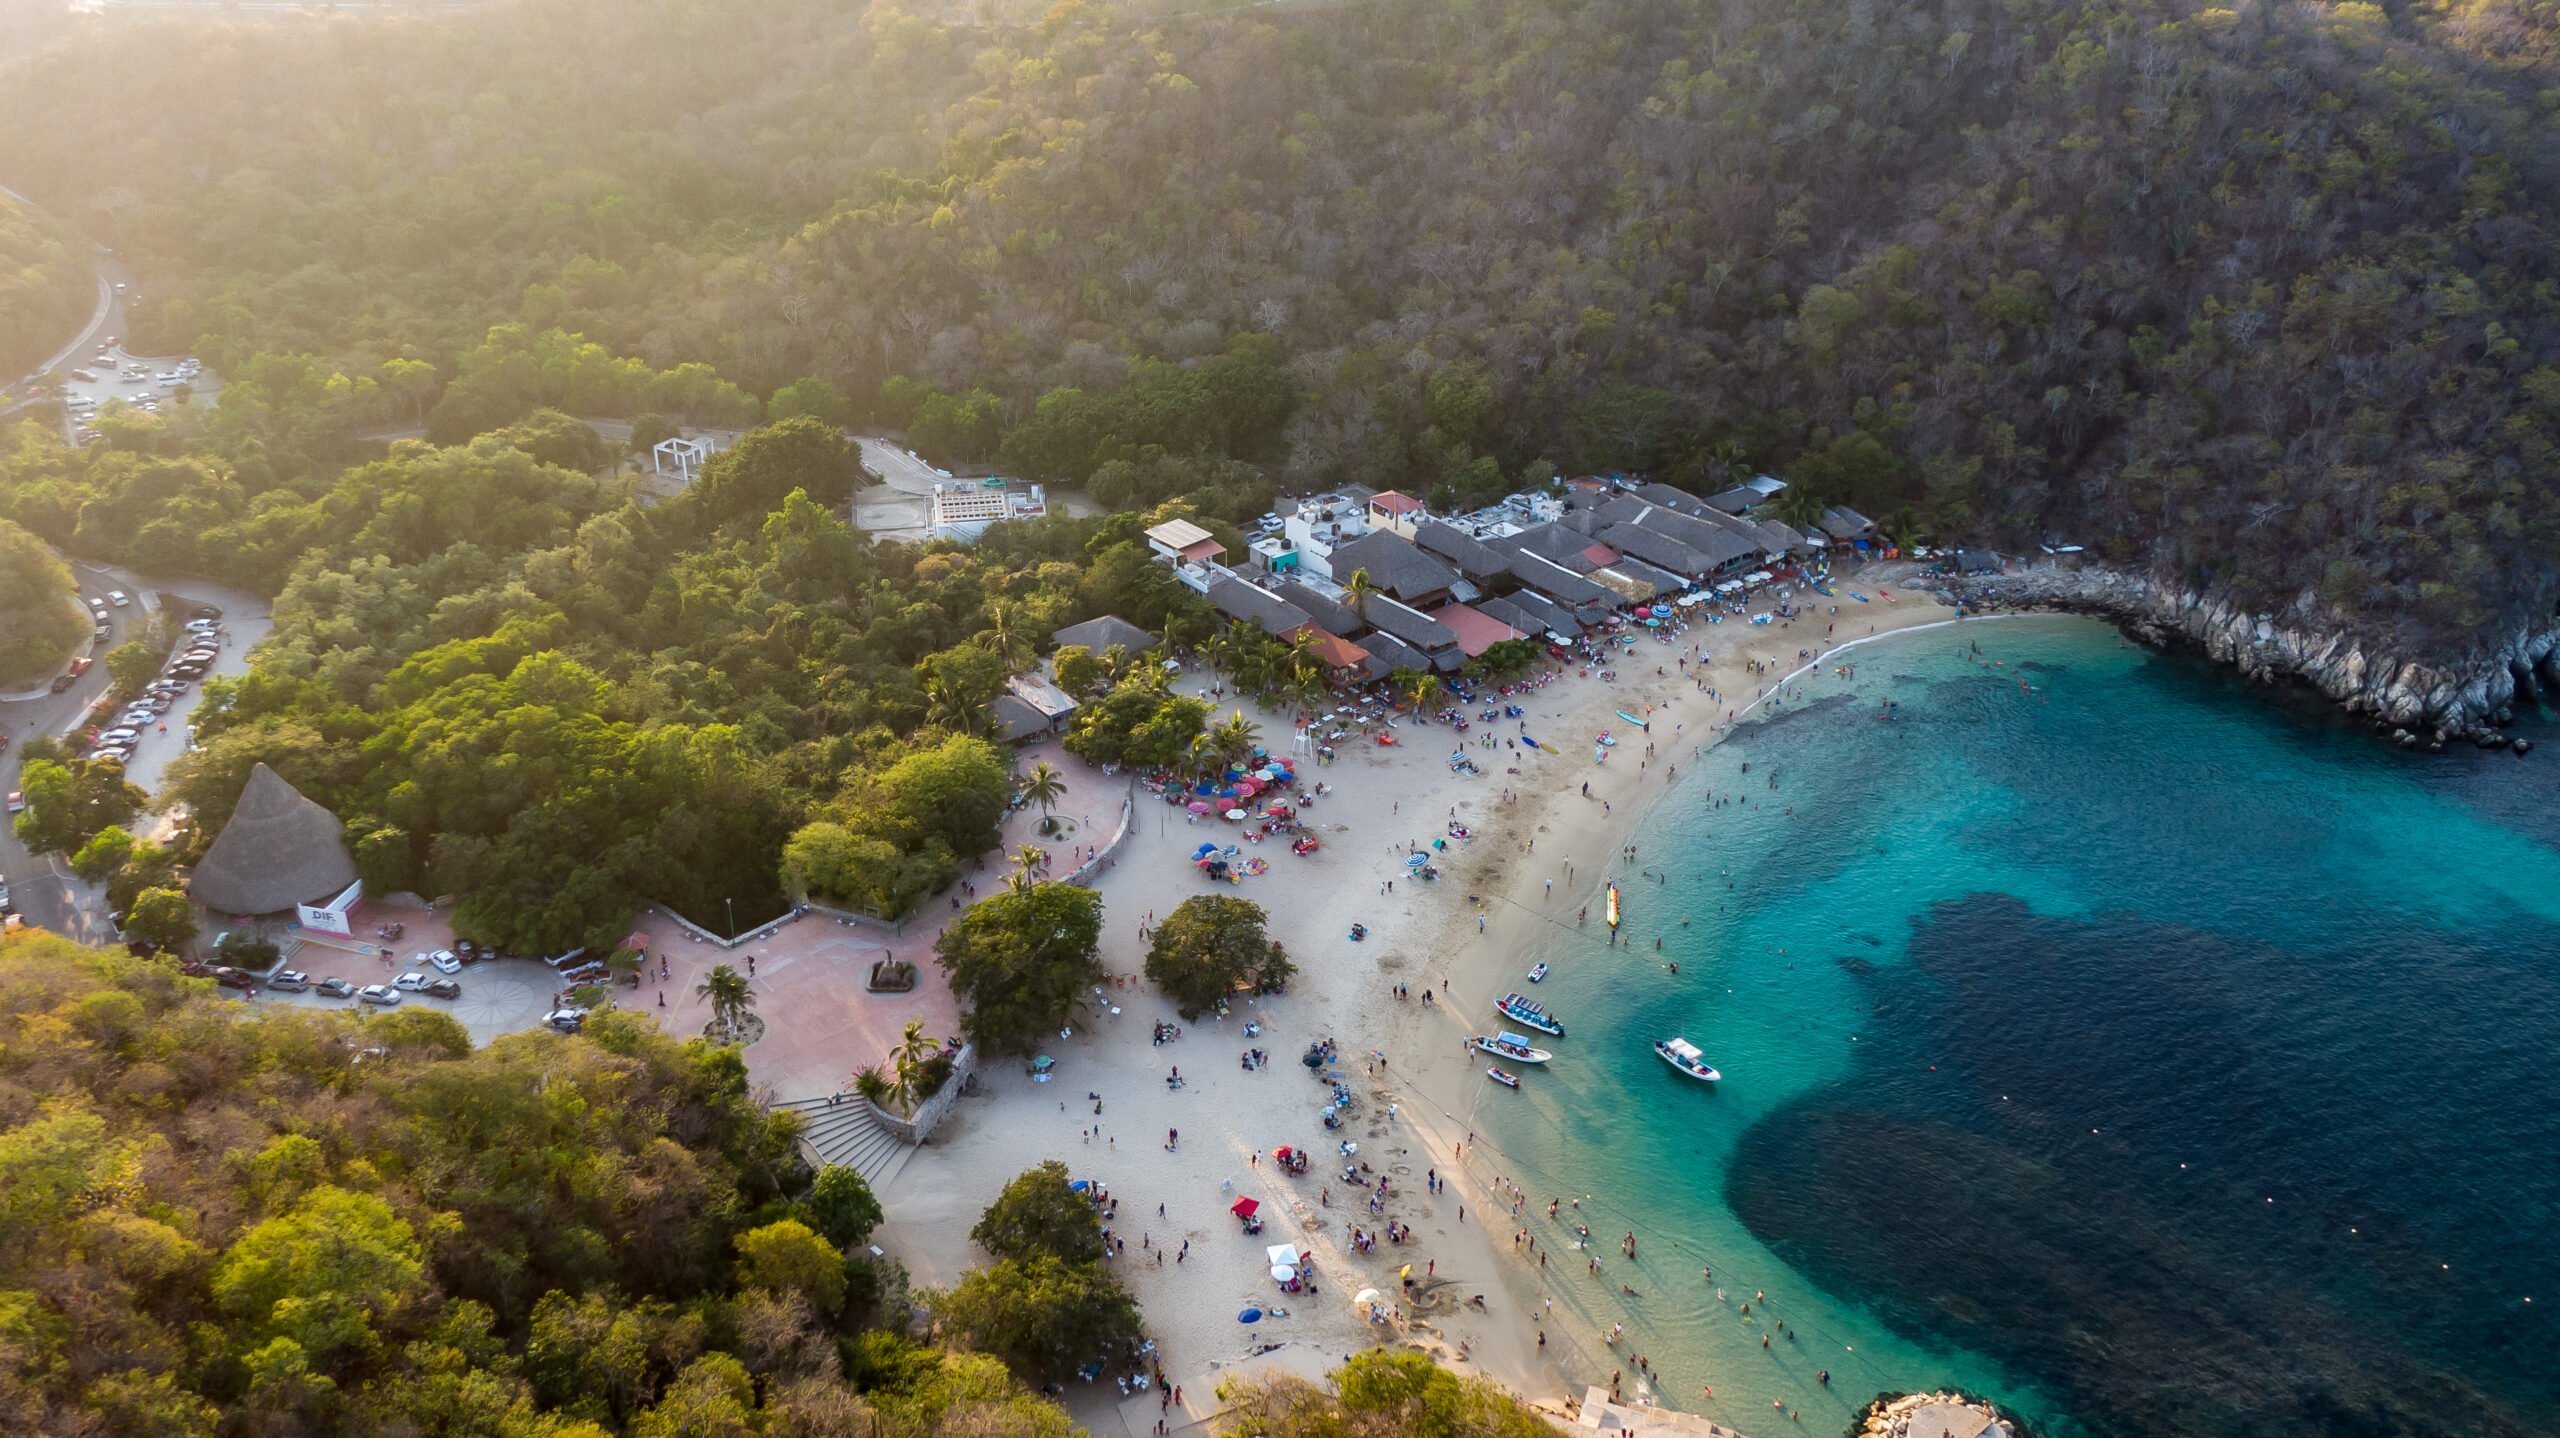 6 Day Highlights Of Huatulco & Surrounding Package Tour